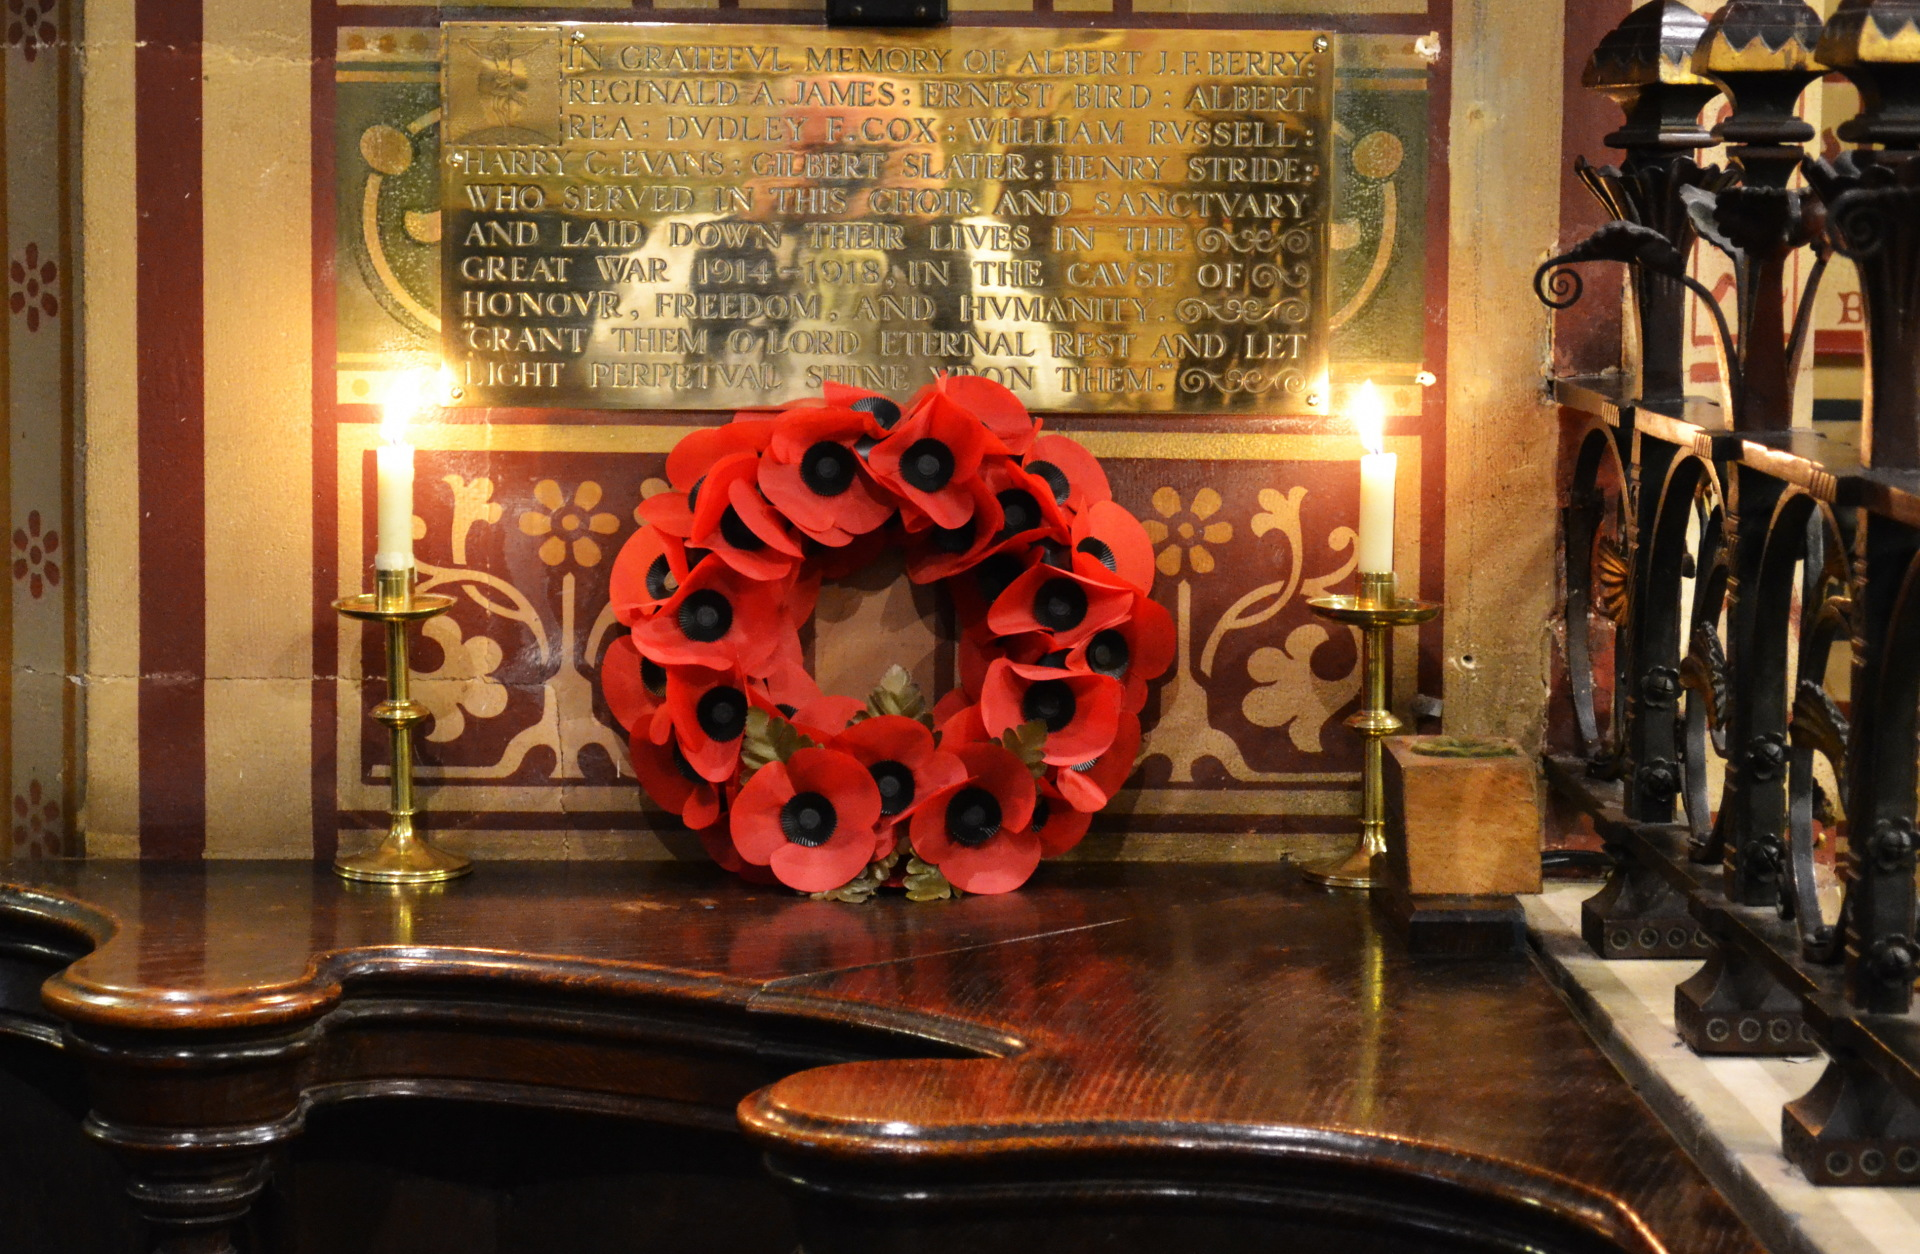 The brass War Memorial in the church which lists their names